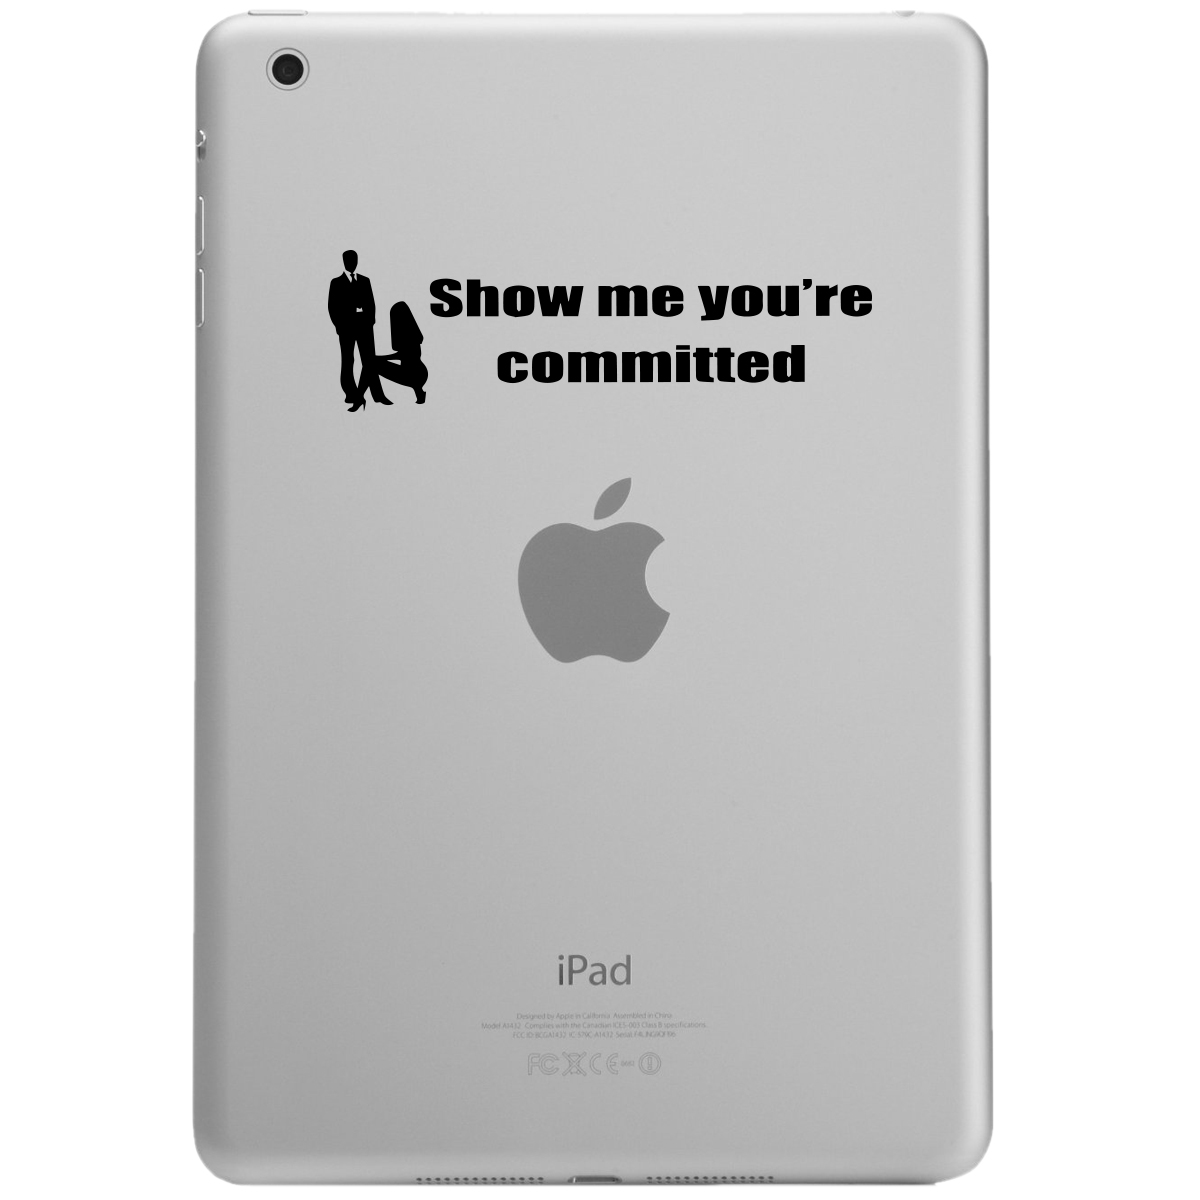 Funny Show Me You're Committed iPad Tablet Vinyl Sticker Decal